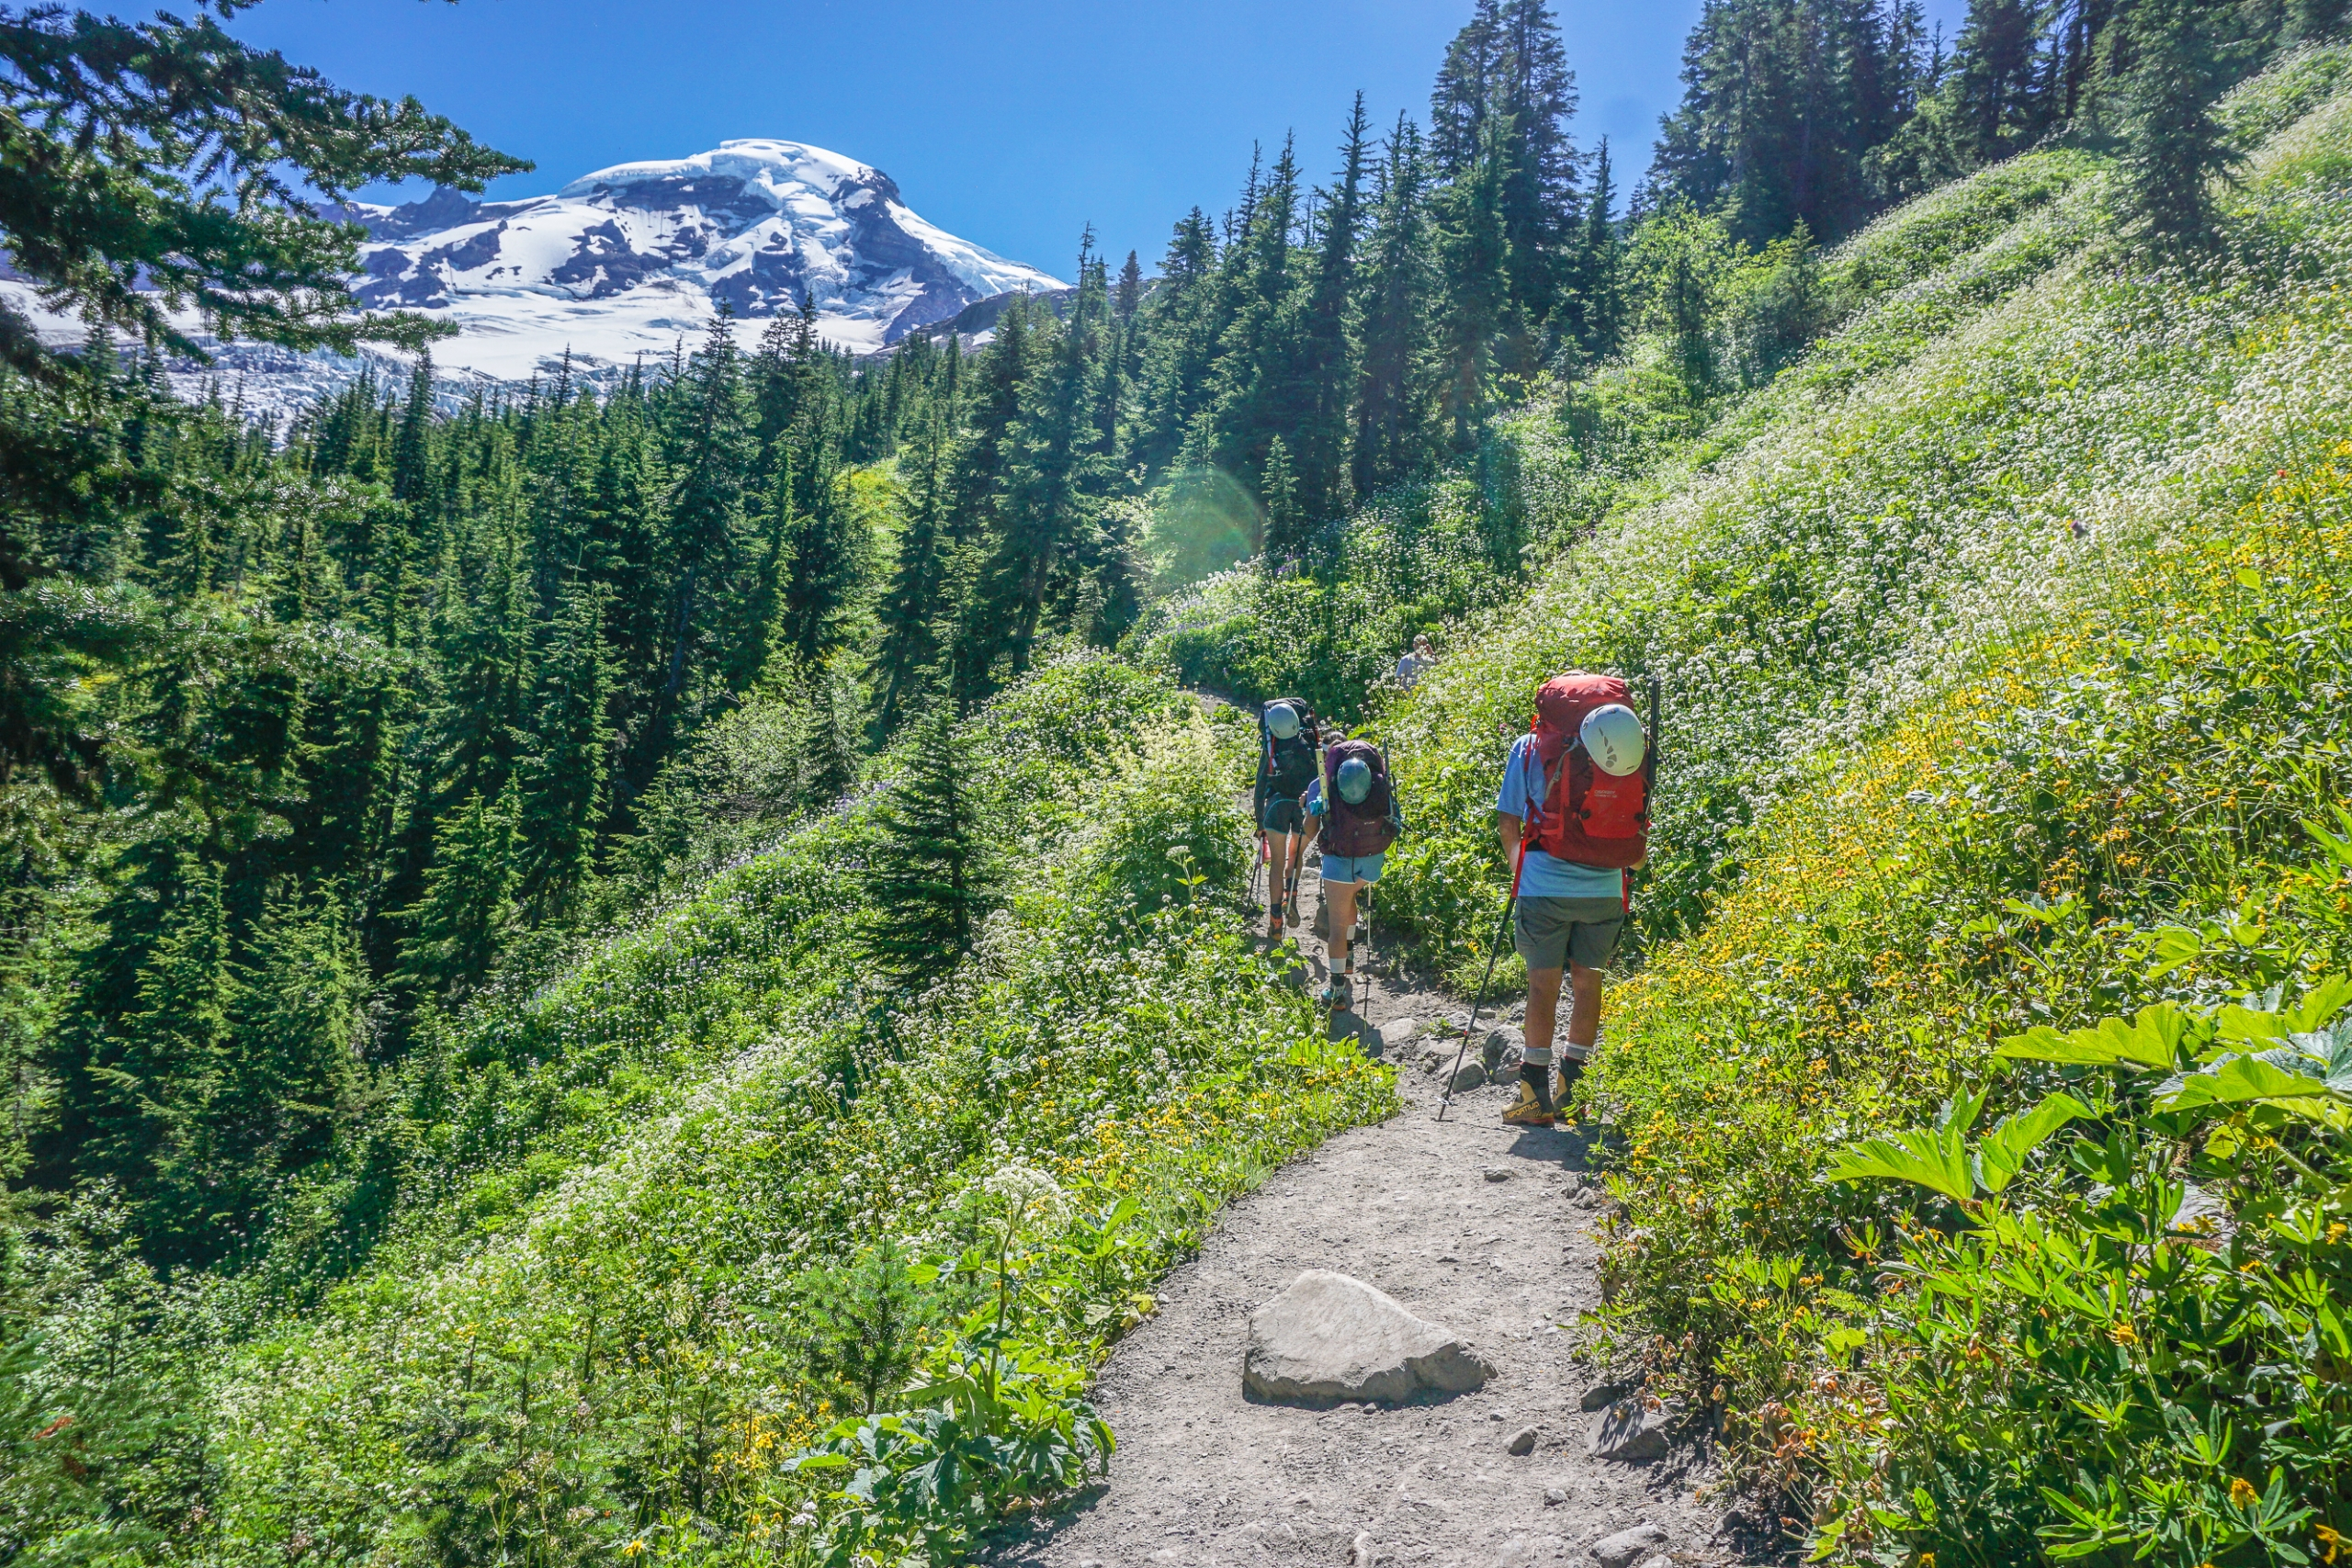 Learning how to pack for a mountaineering trip is important because a lighter pack is easier to carry.Going mountaineering. Wildflowers line the trail on the approach to Mt Baker.